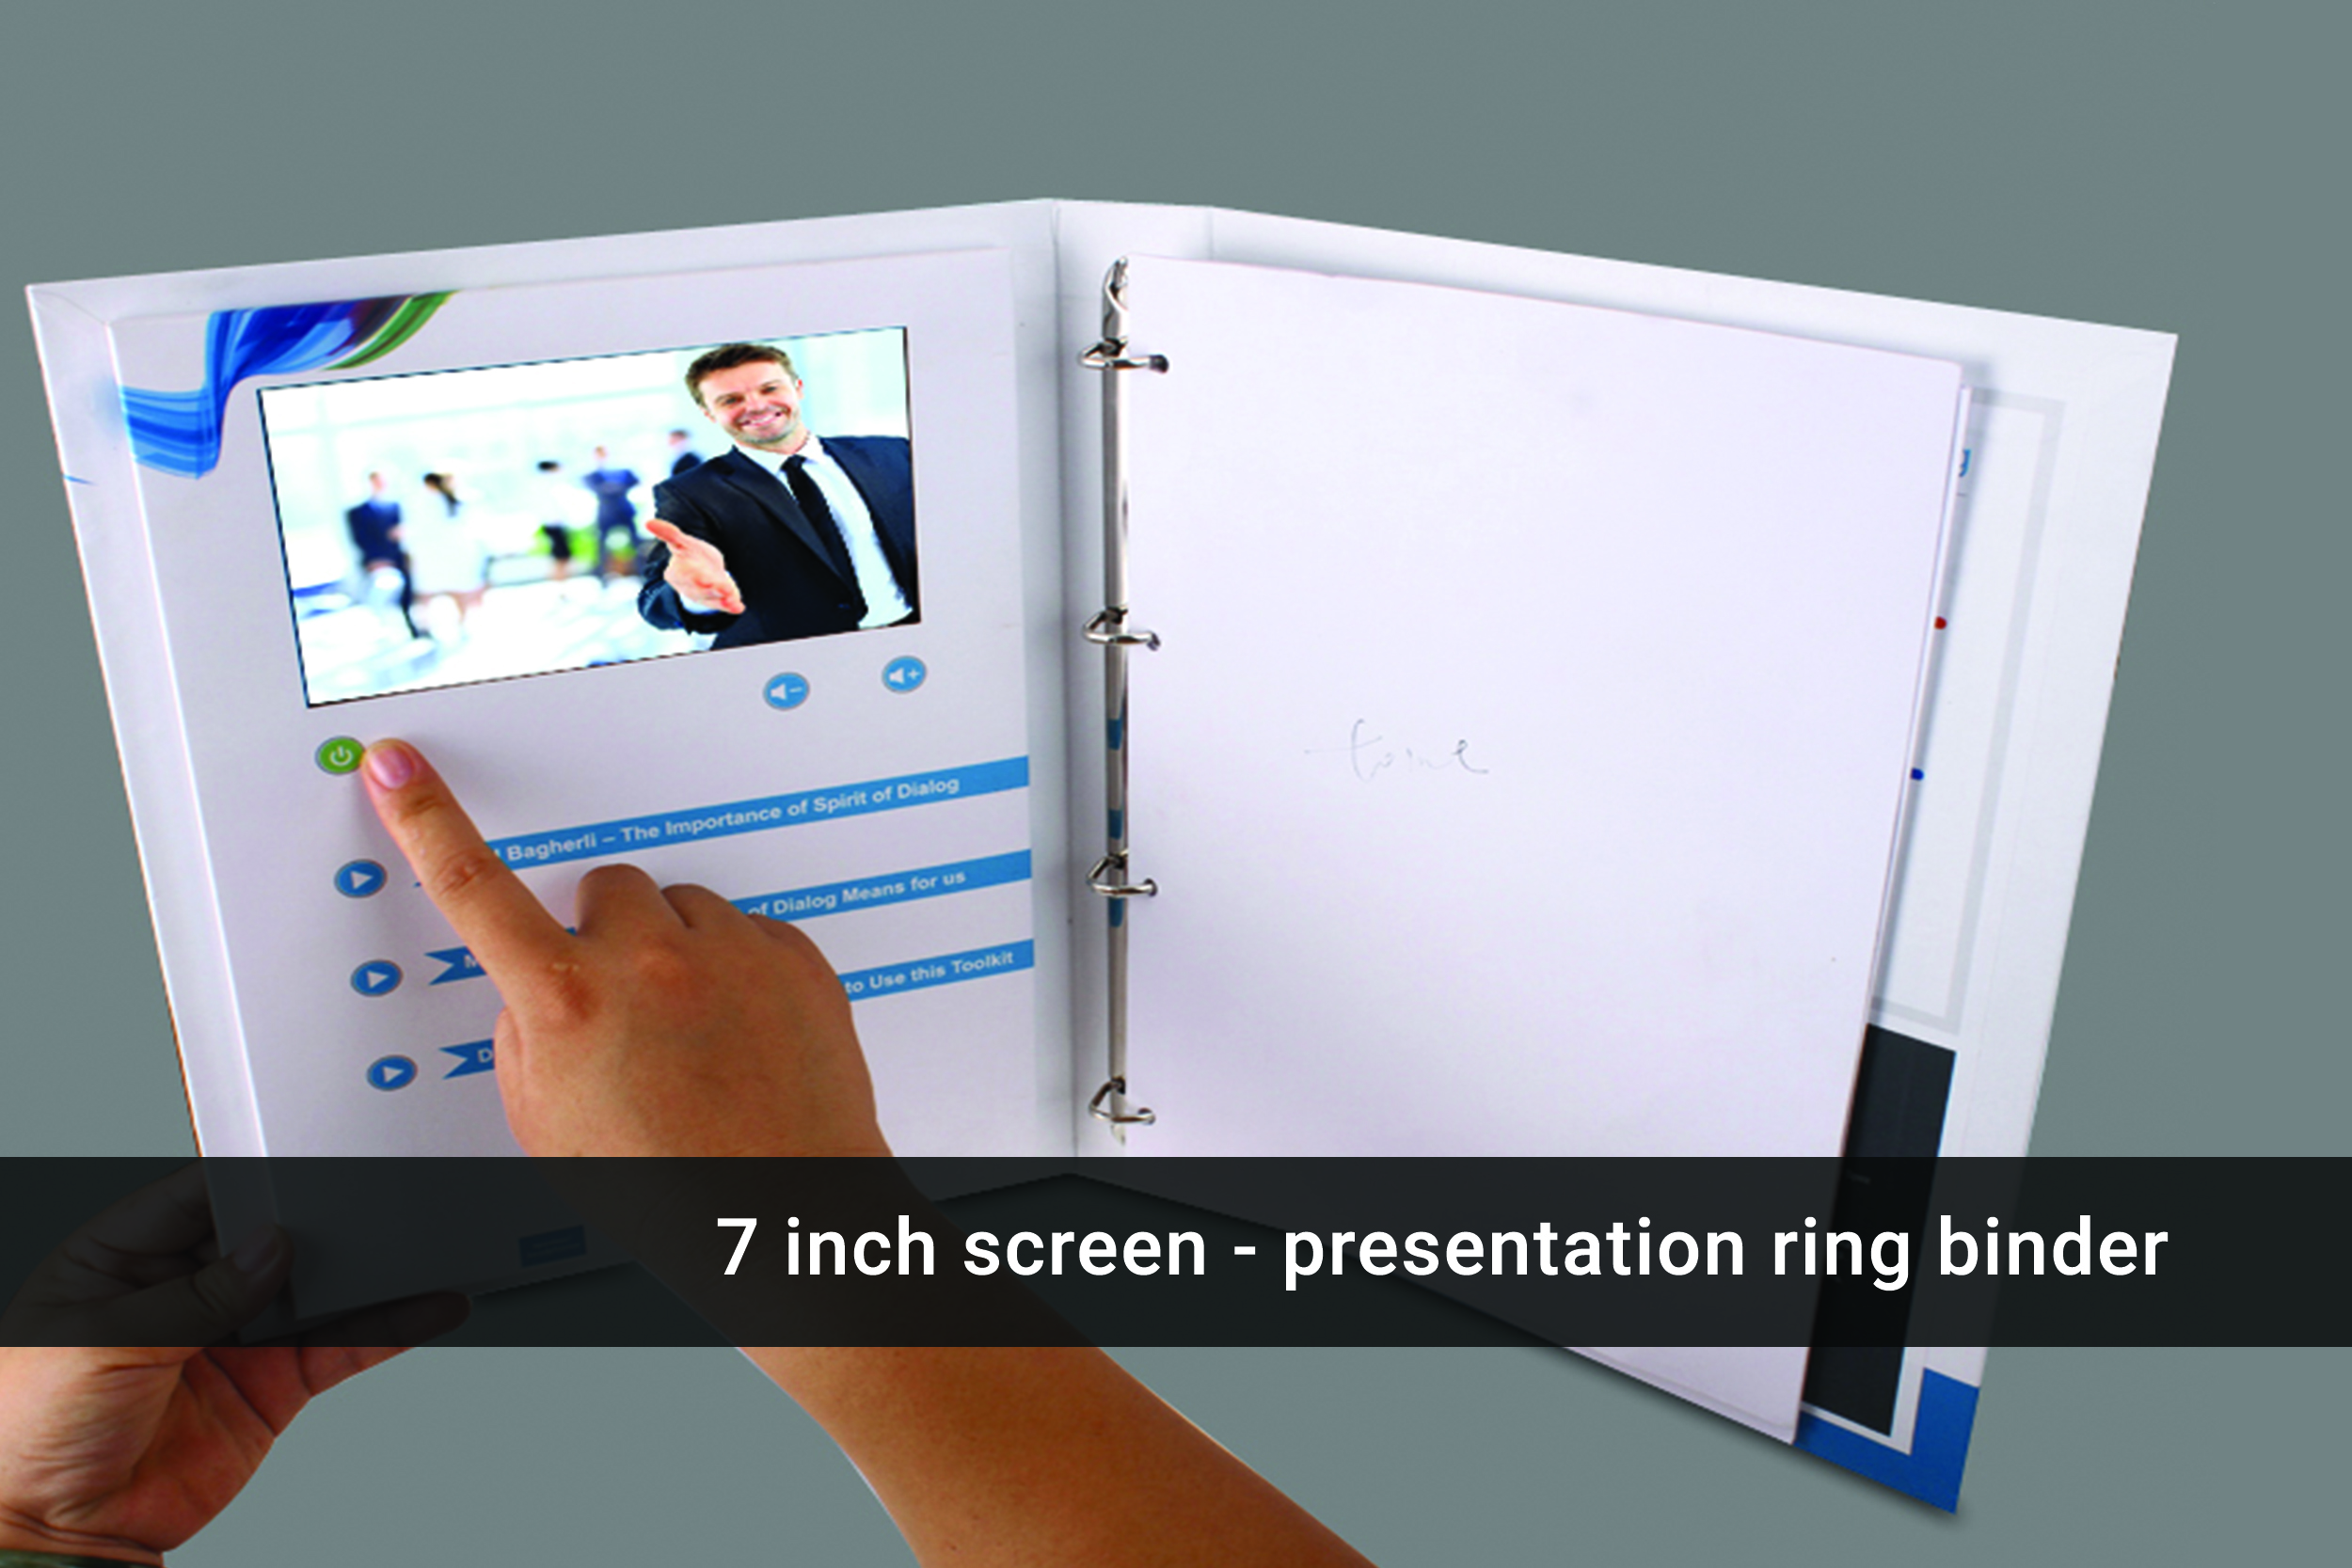 7 inch video player in 3 ring binder